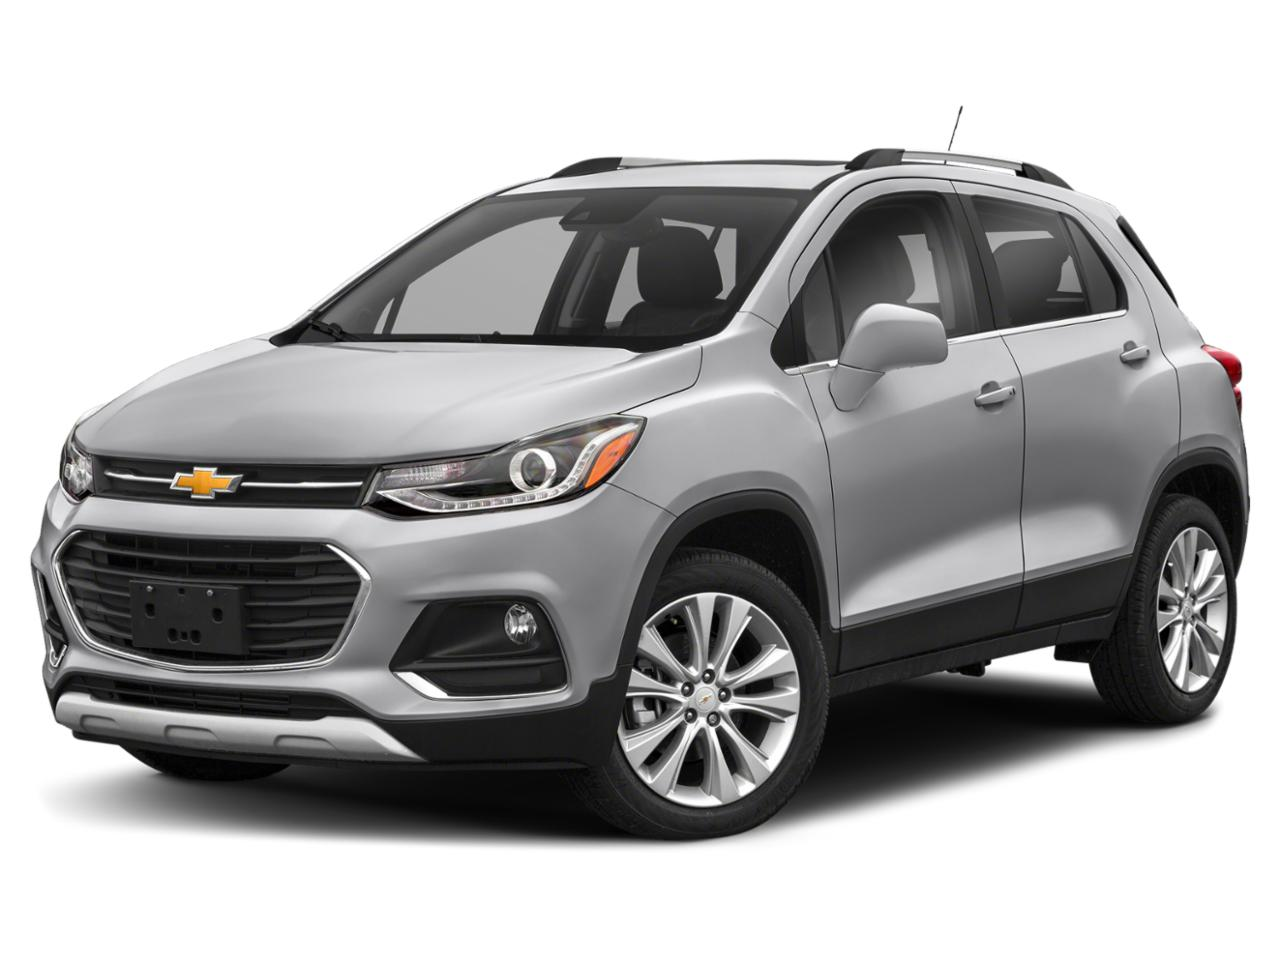 2020 Chevrolet Trax Vehicle Photo in Vincennes, IN 47591